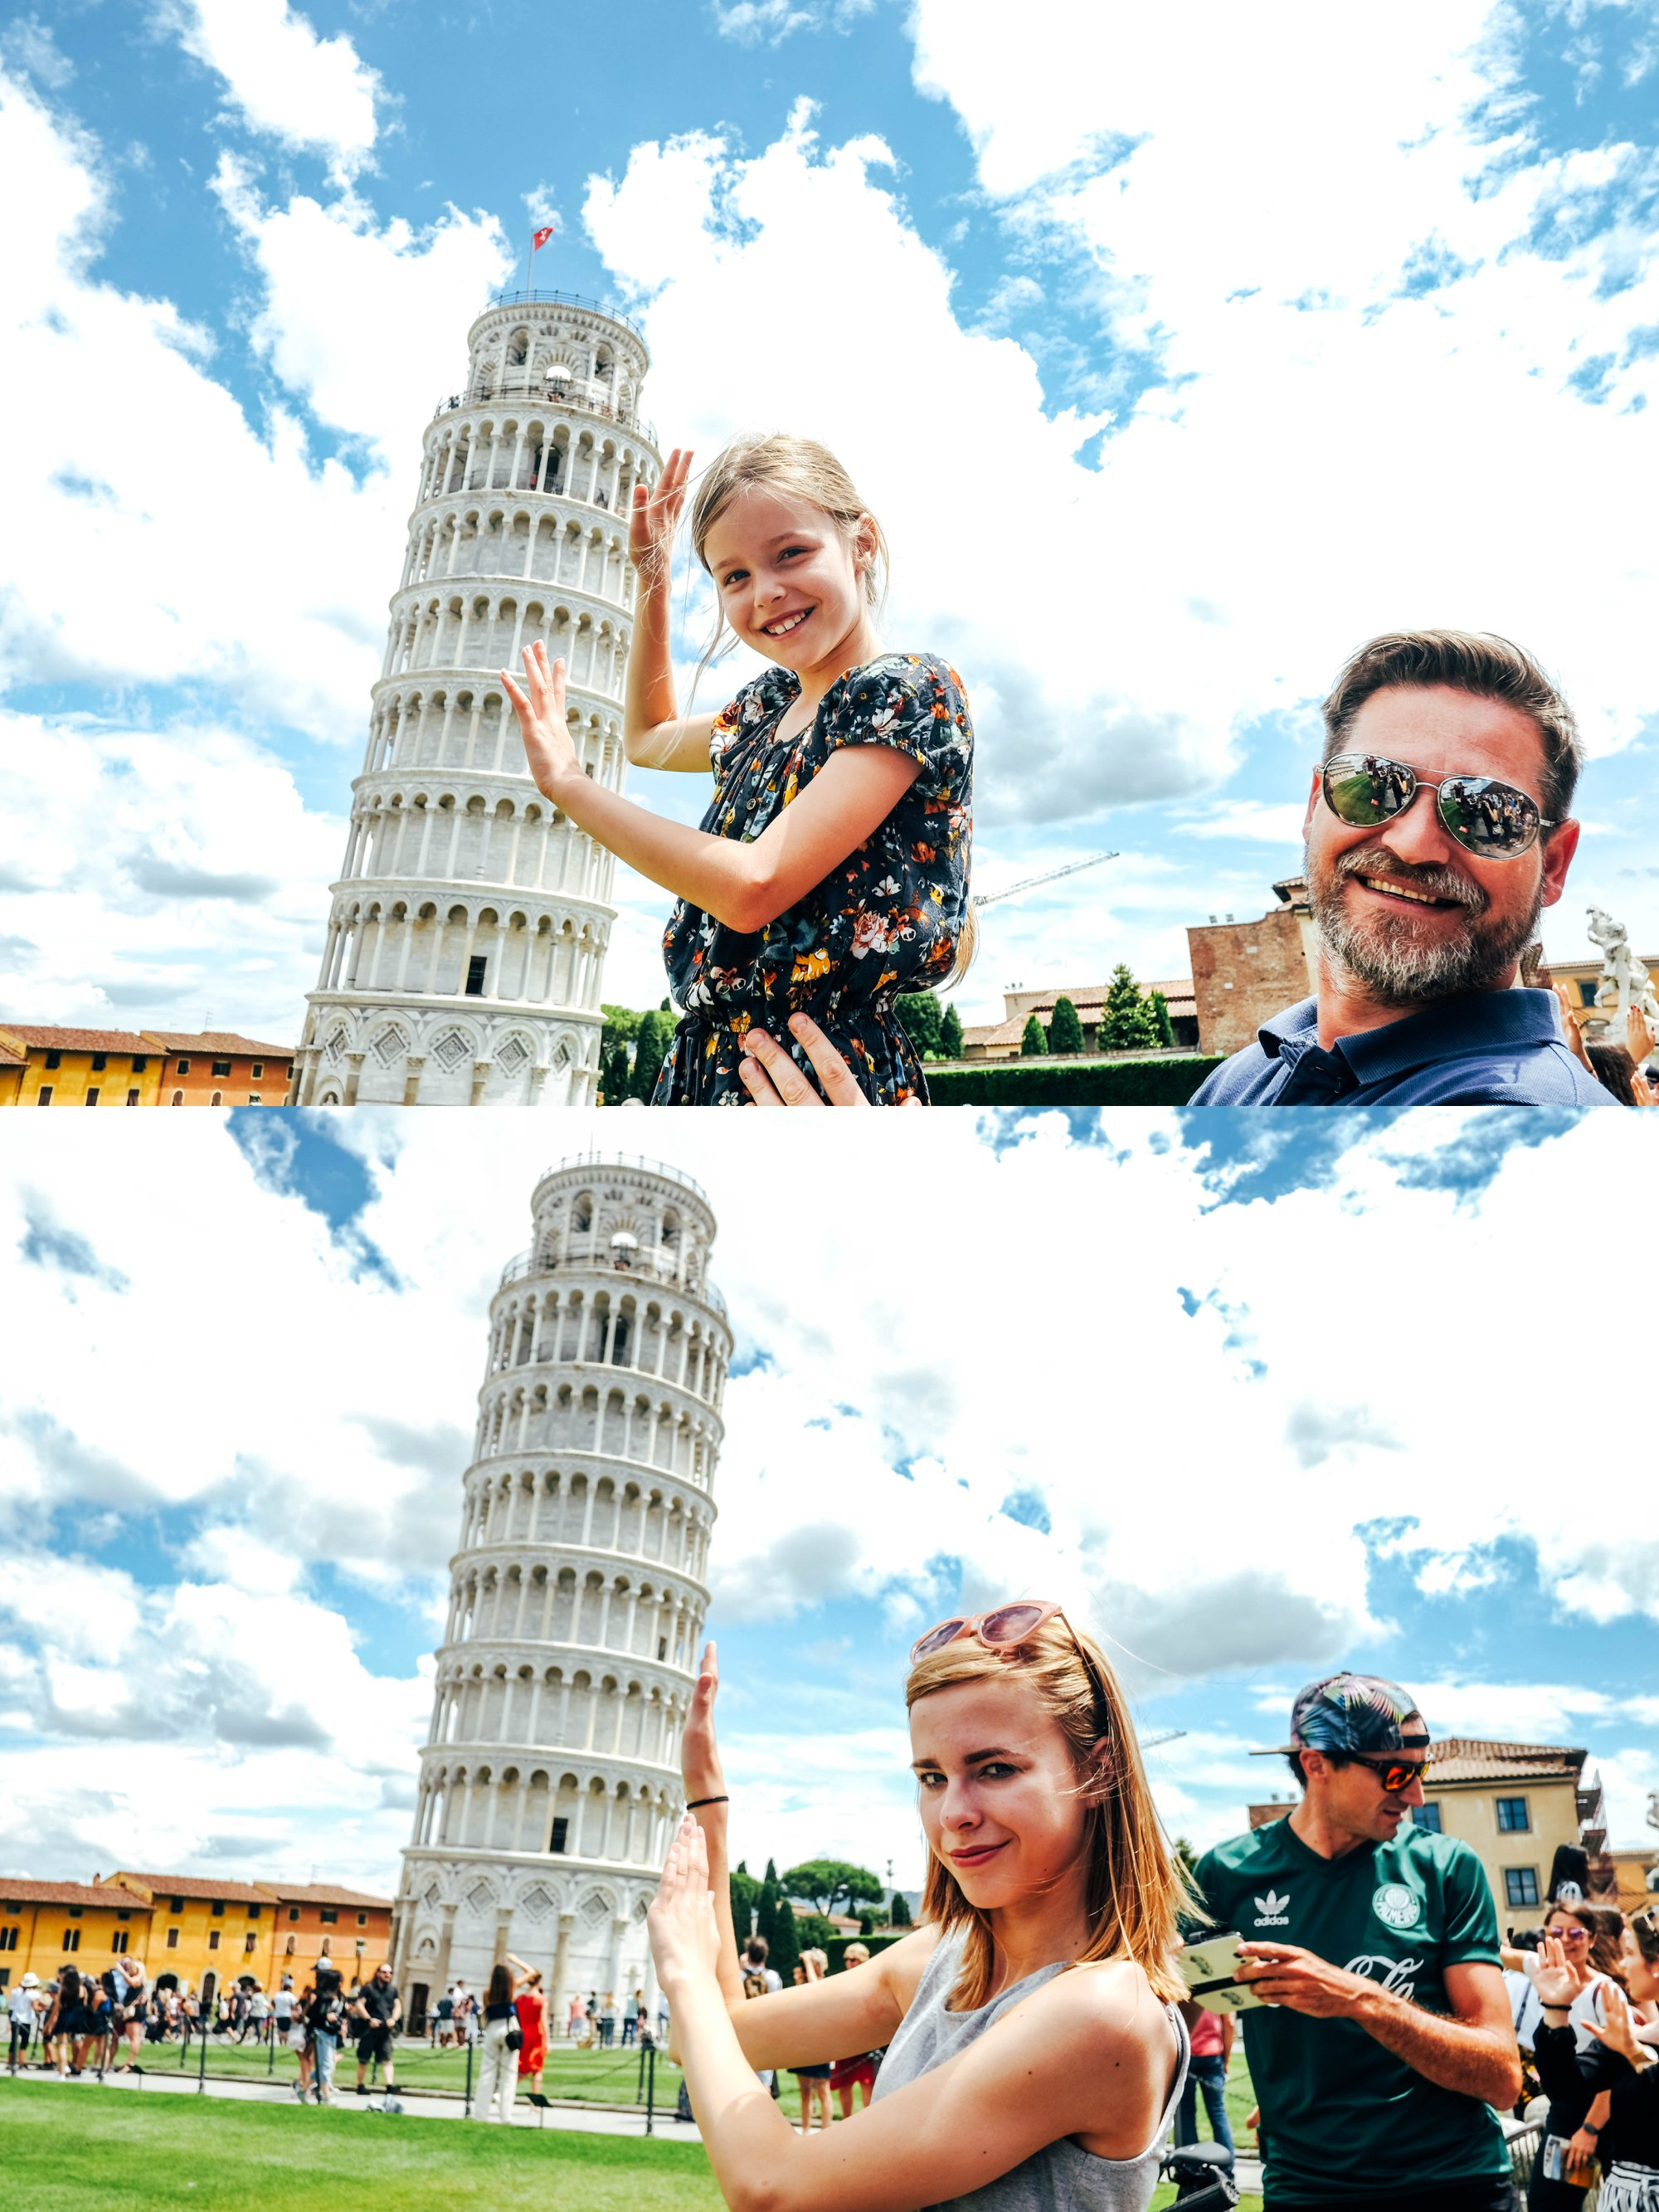 Kids holding up Leaning Tower of Pisa Essex Documentary Travel Wedding Photographer